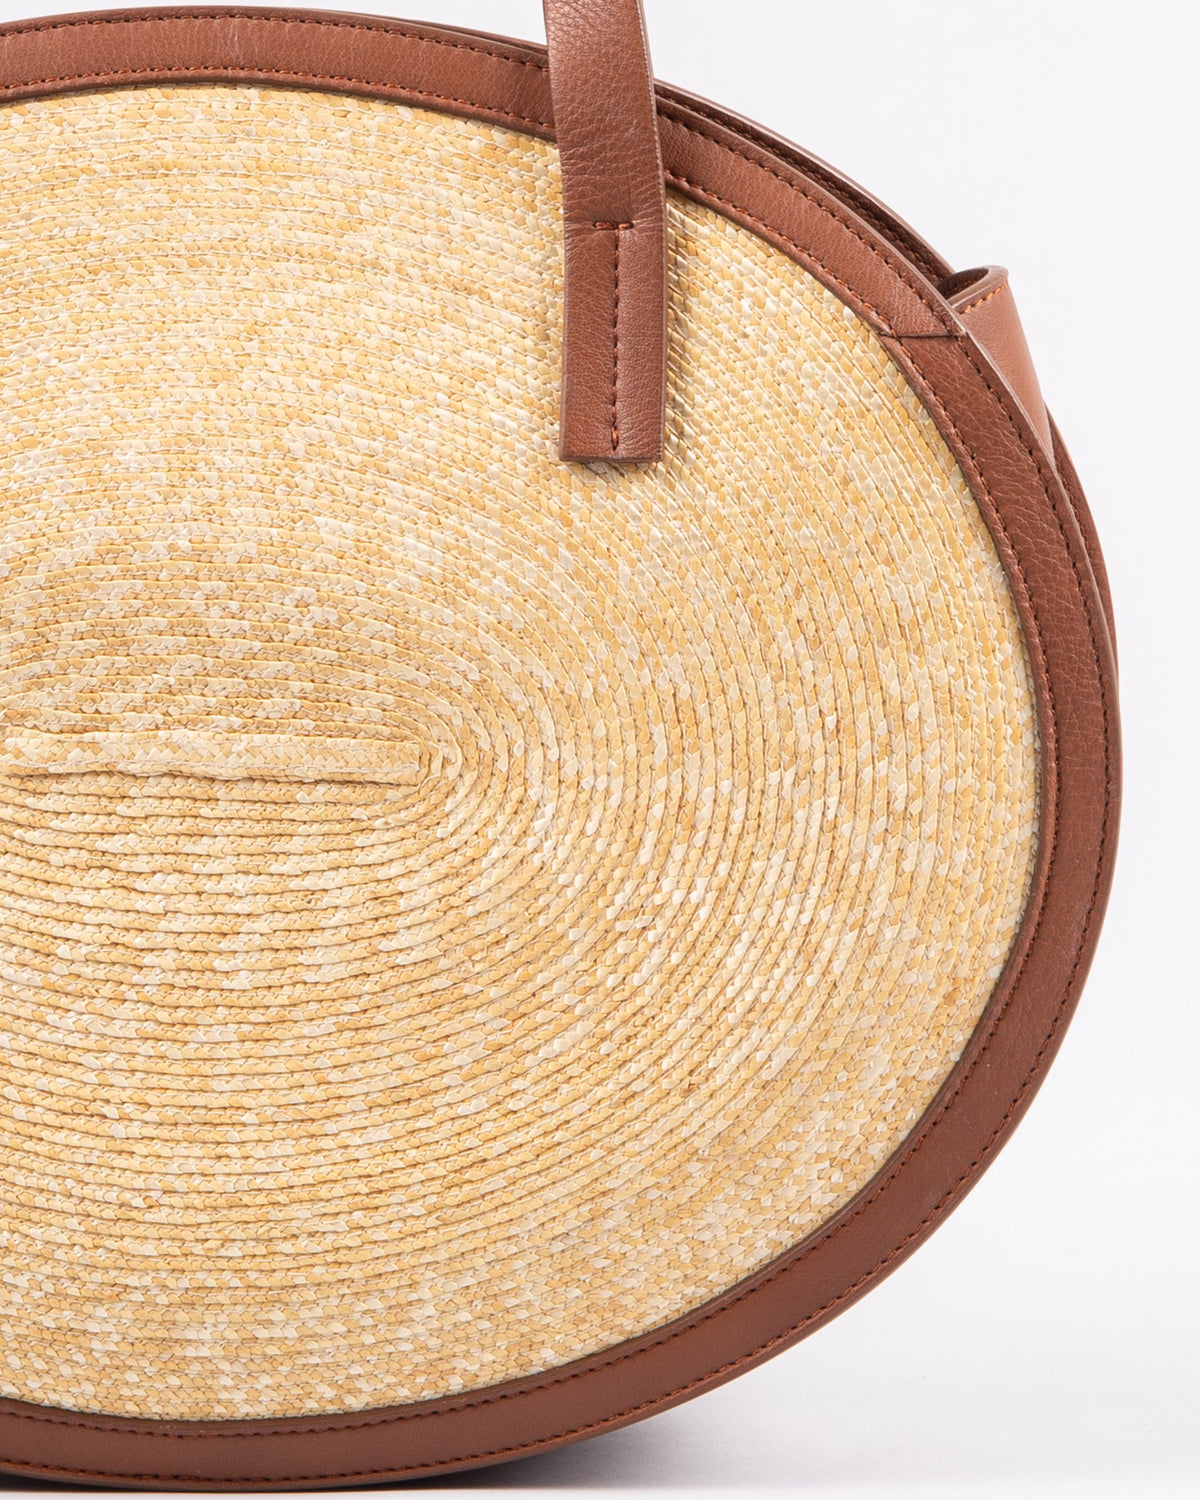 Montegallo Rosa Straw Bag Medium with leather handle